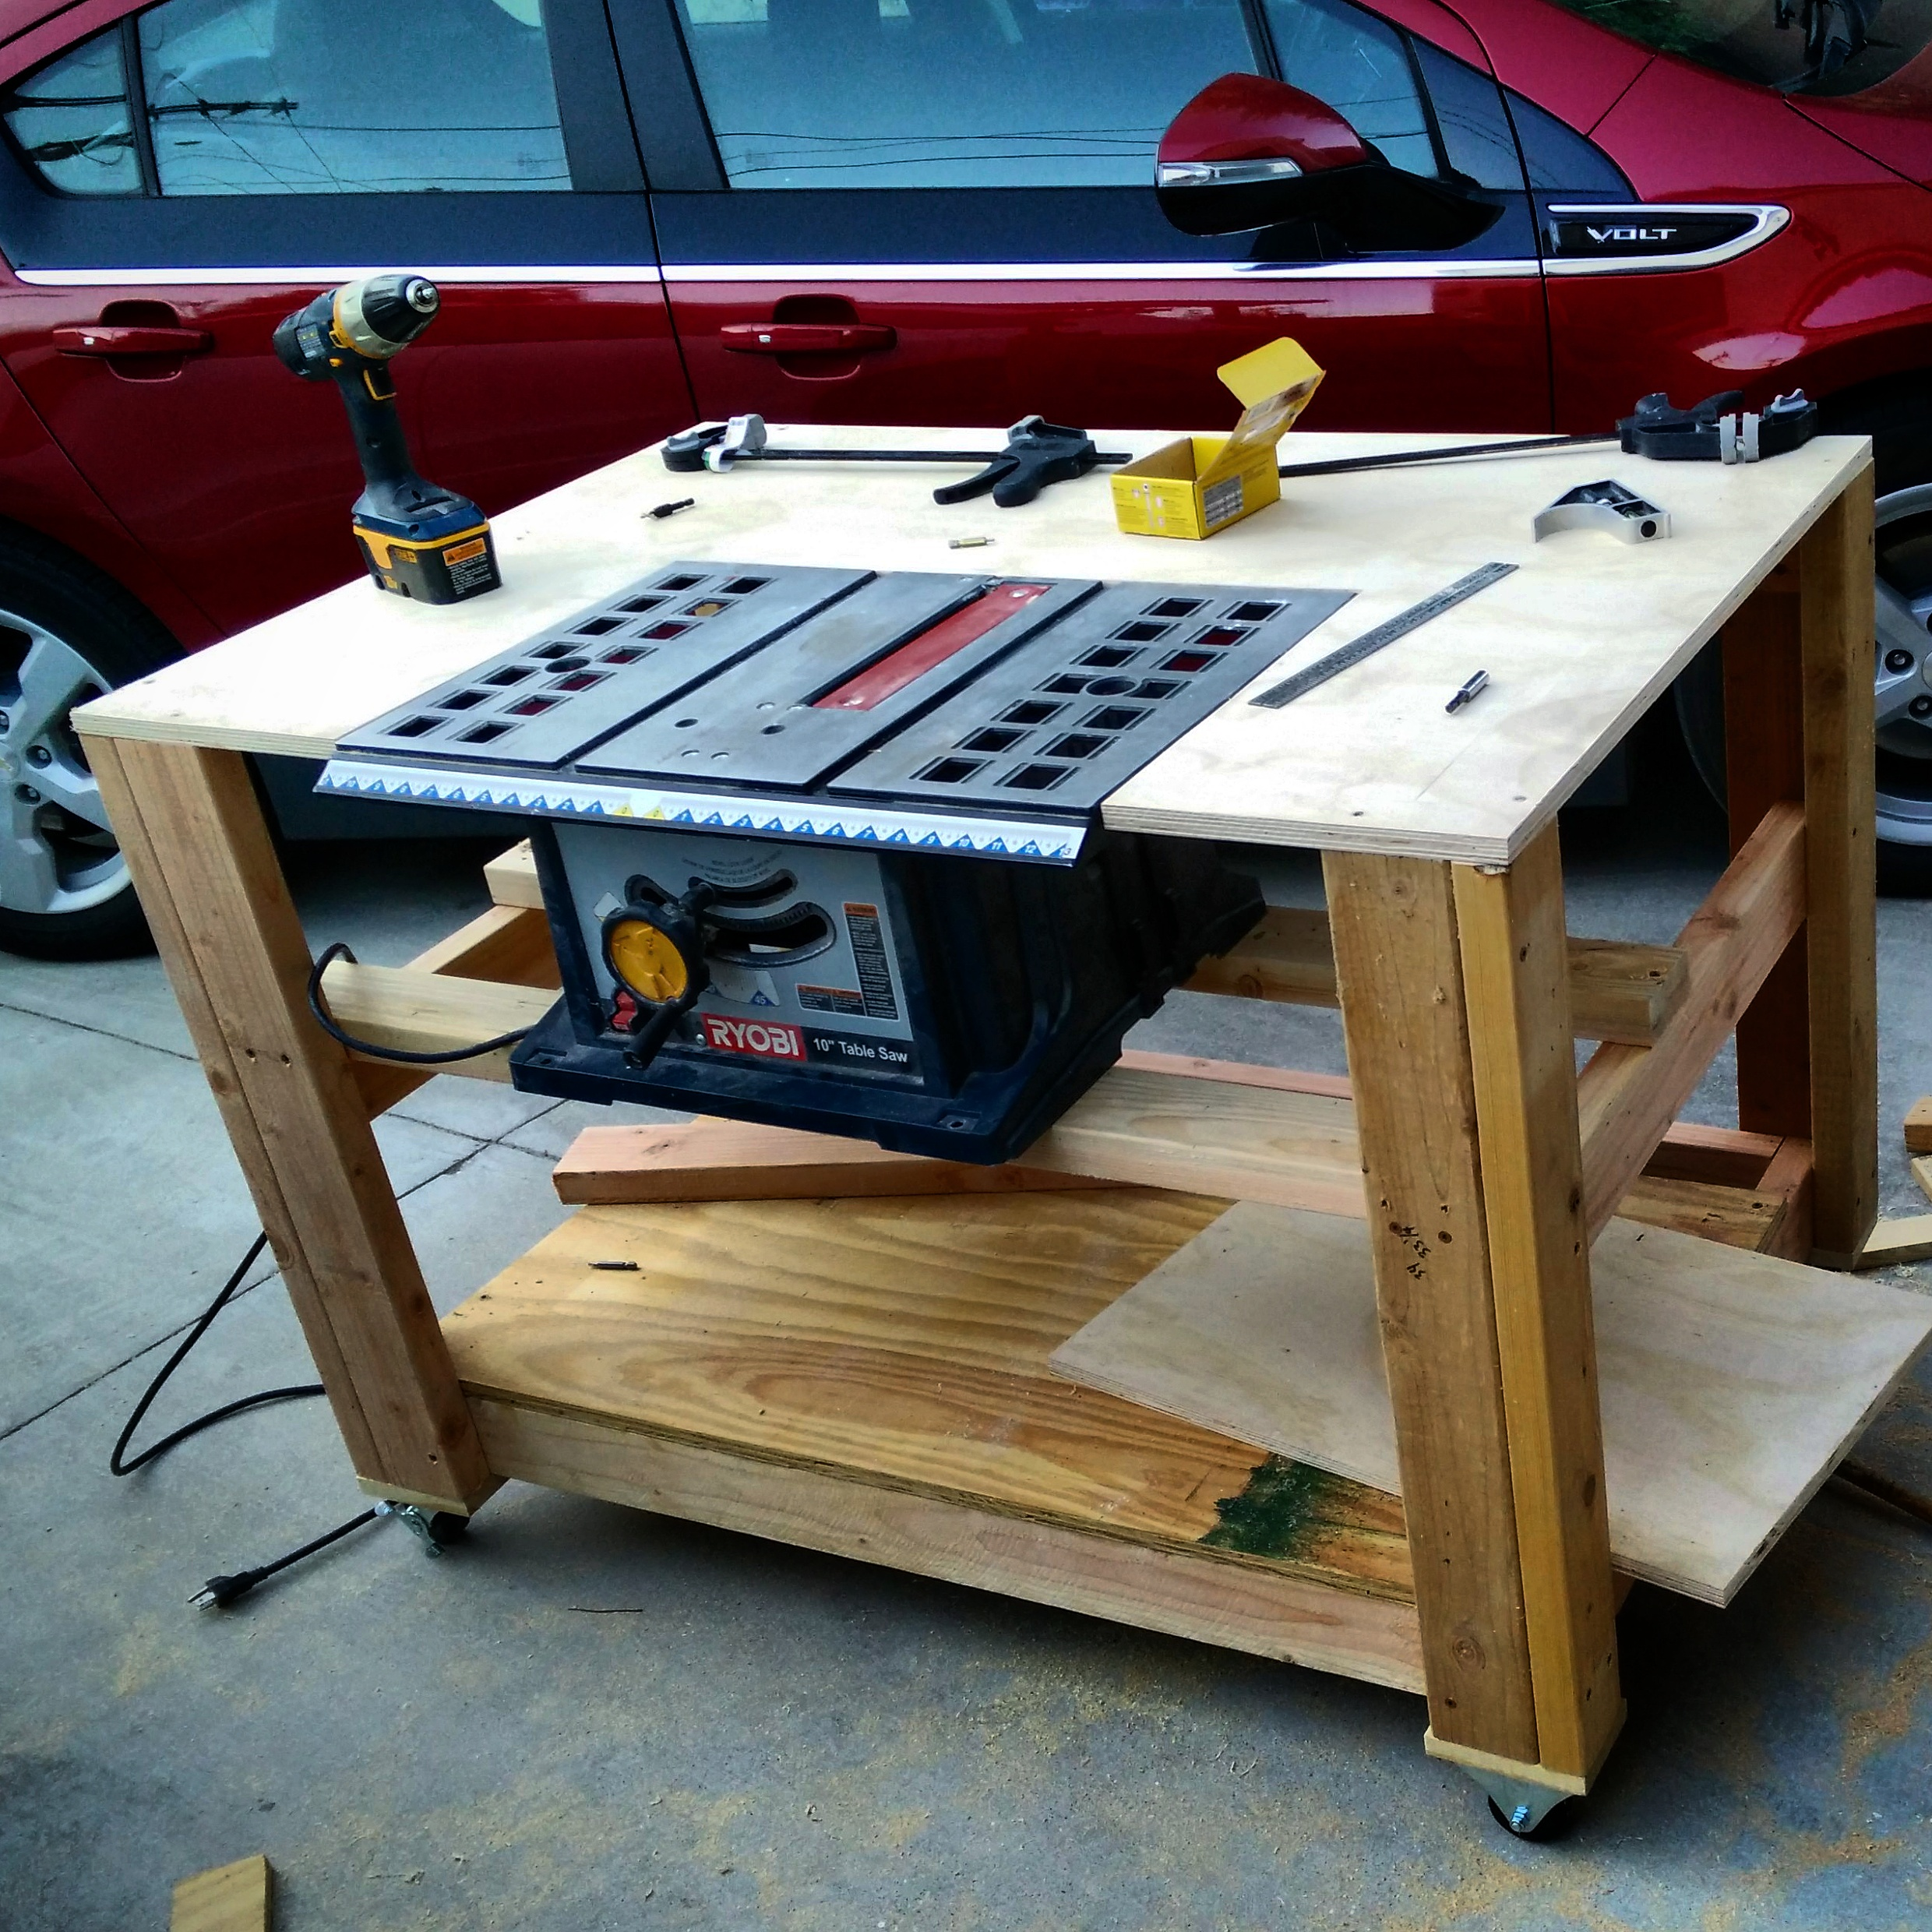 Mobile Workbenches For Garages : Garage organization workbench project of